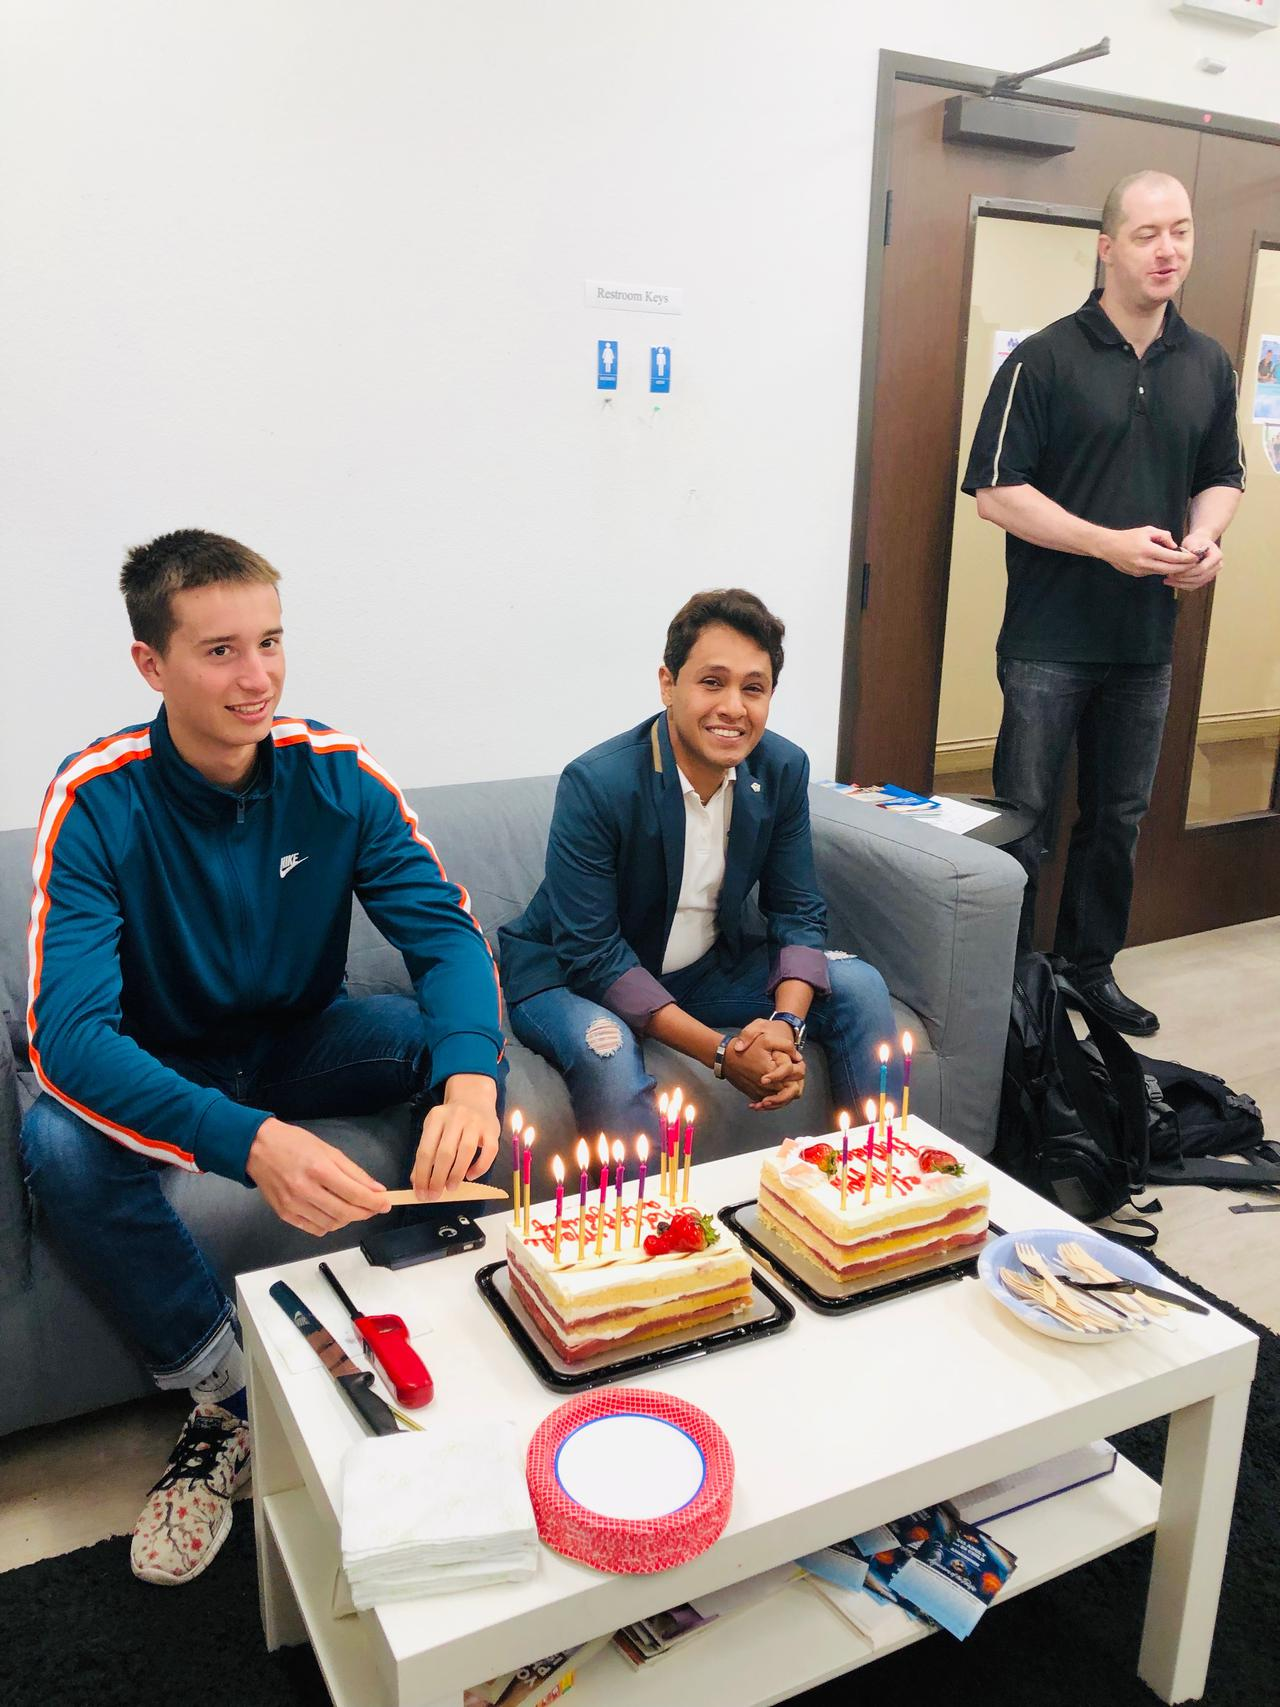 Two happy students on a couch, celebrating their brithday with two cakes in front of them on the table. The best way to understand how to learn English in the USA is through practicing with Americans.